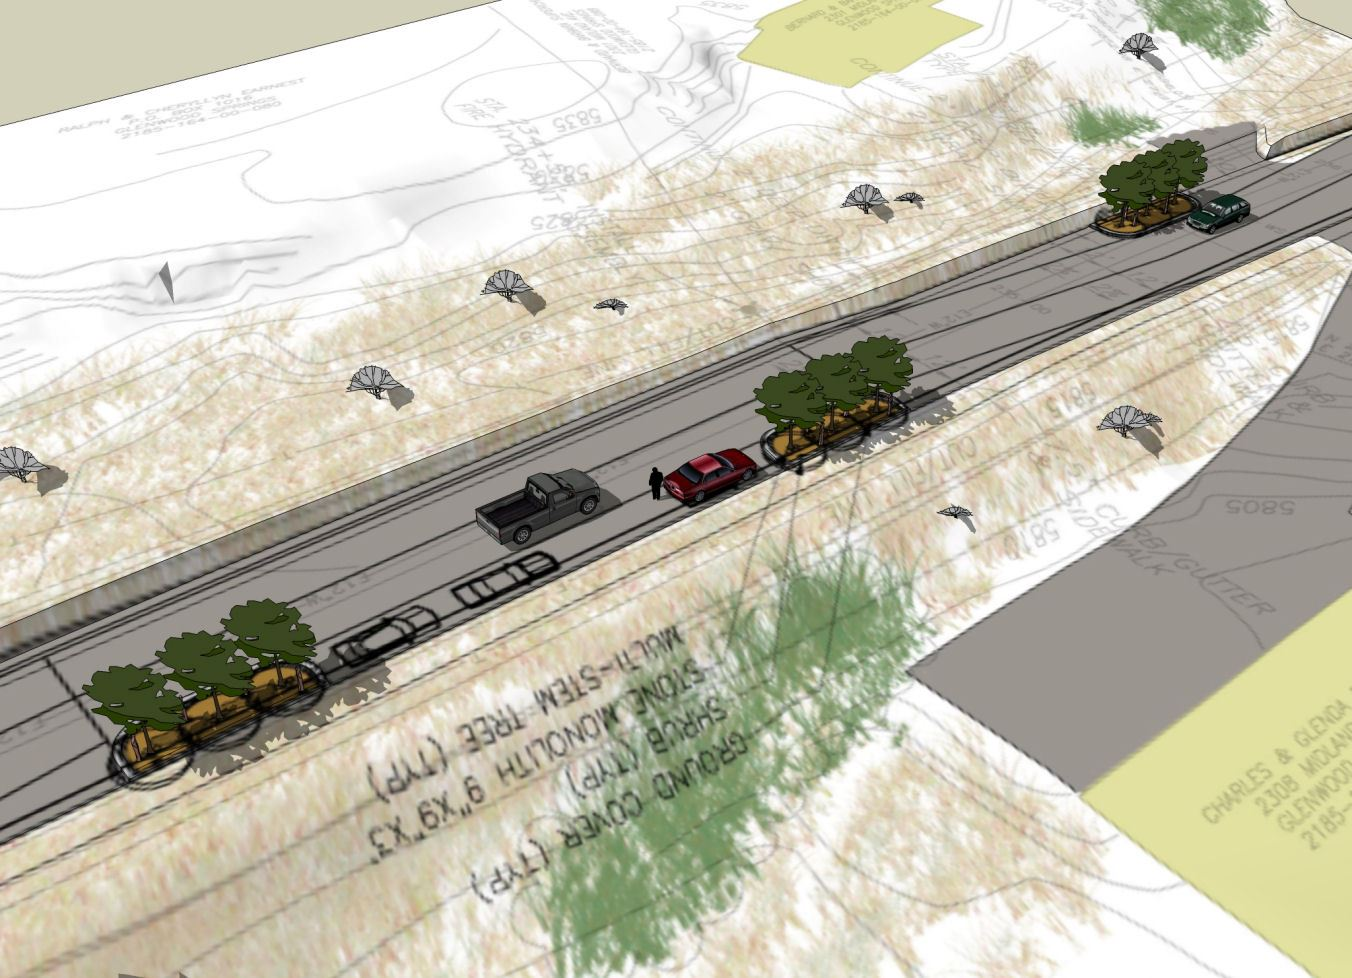 A conceptual design of the extending curb for Midland Avenue